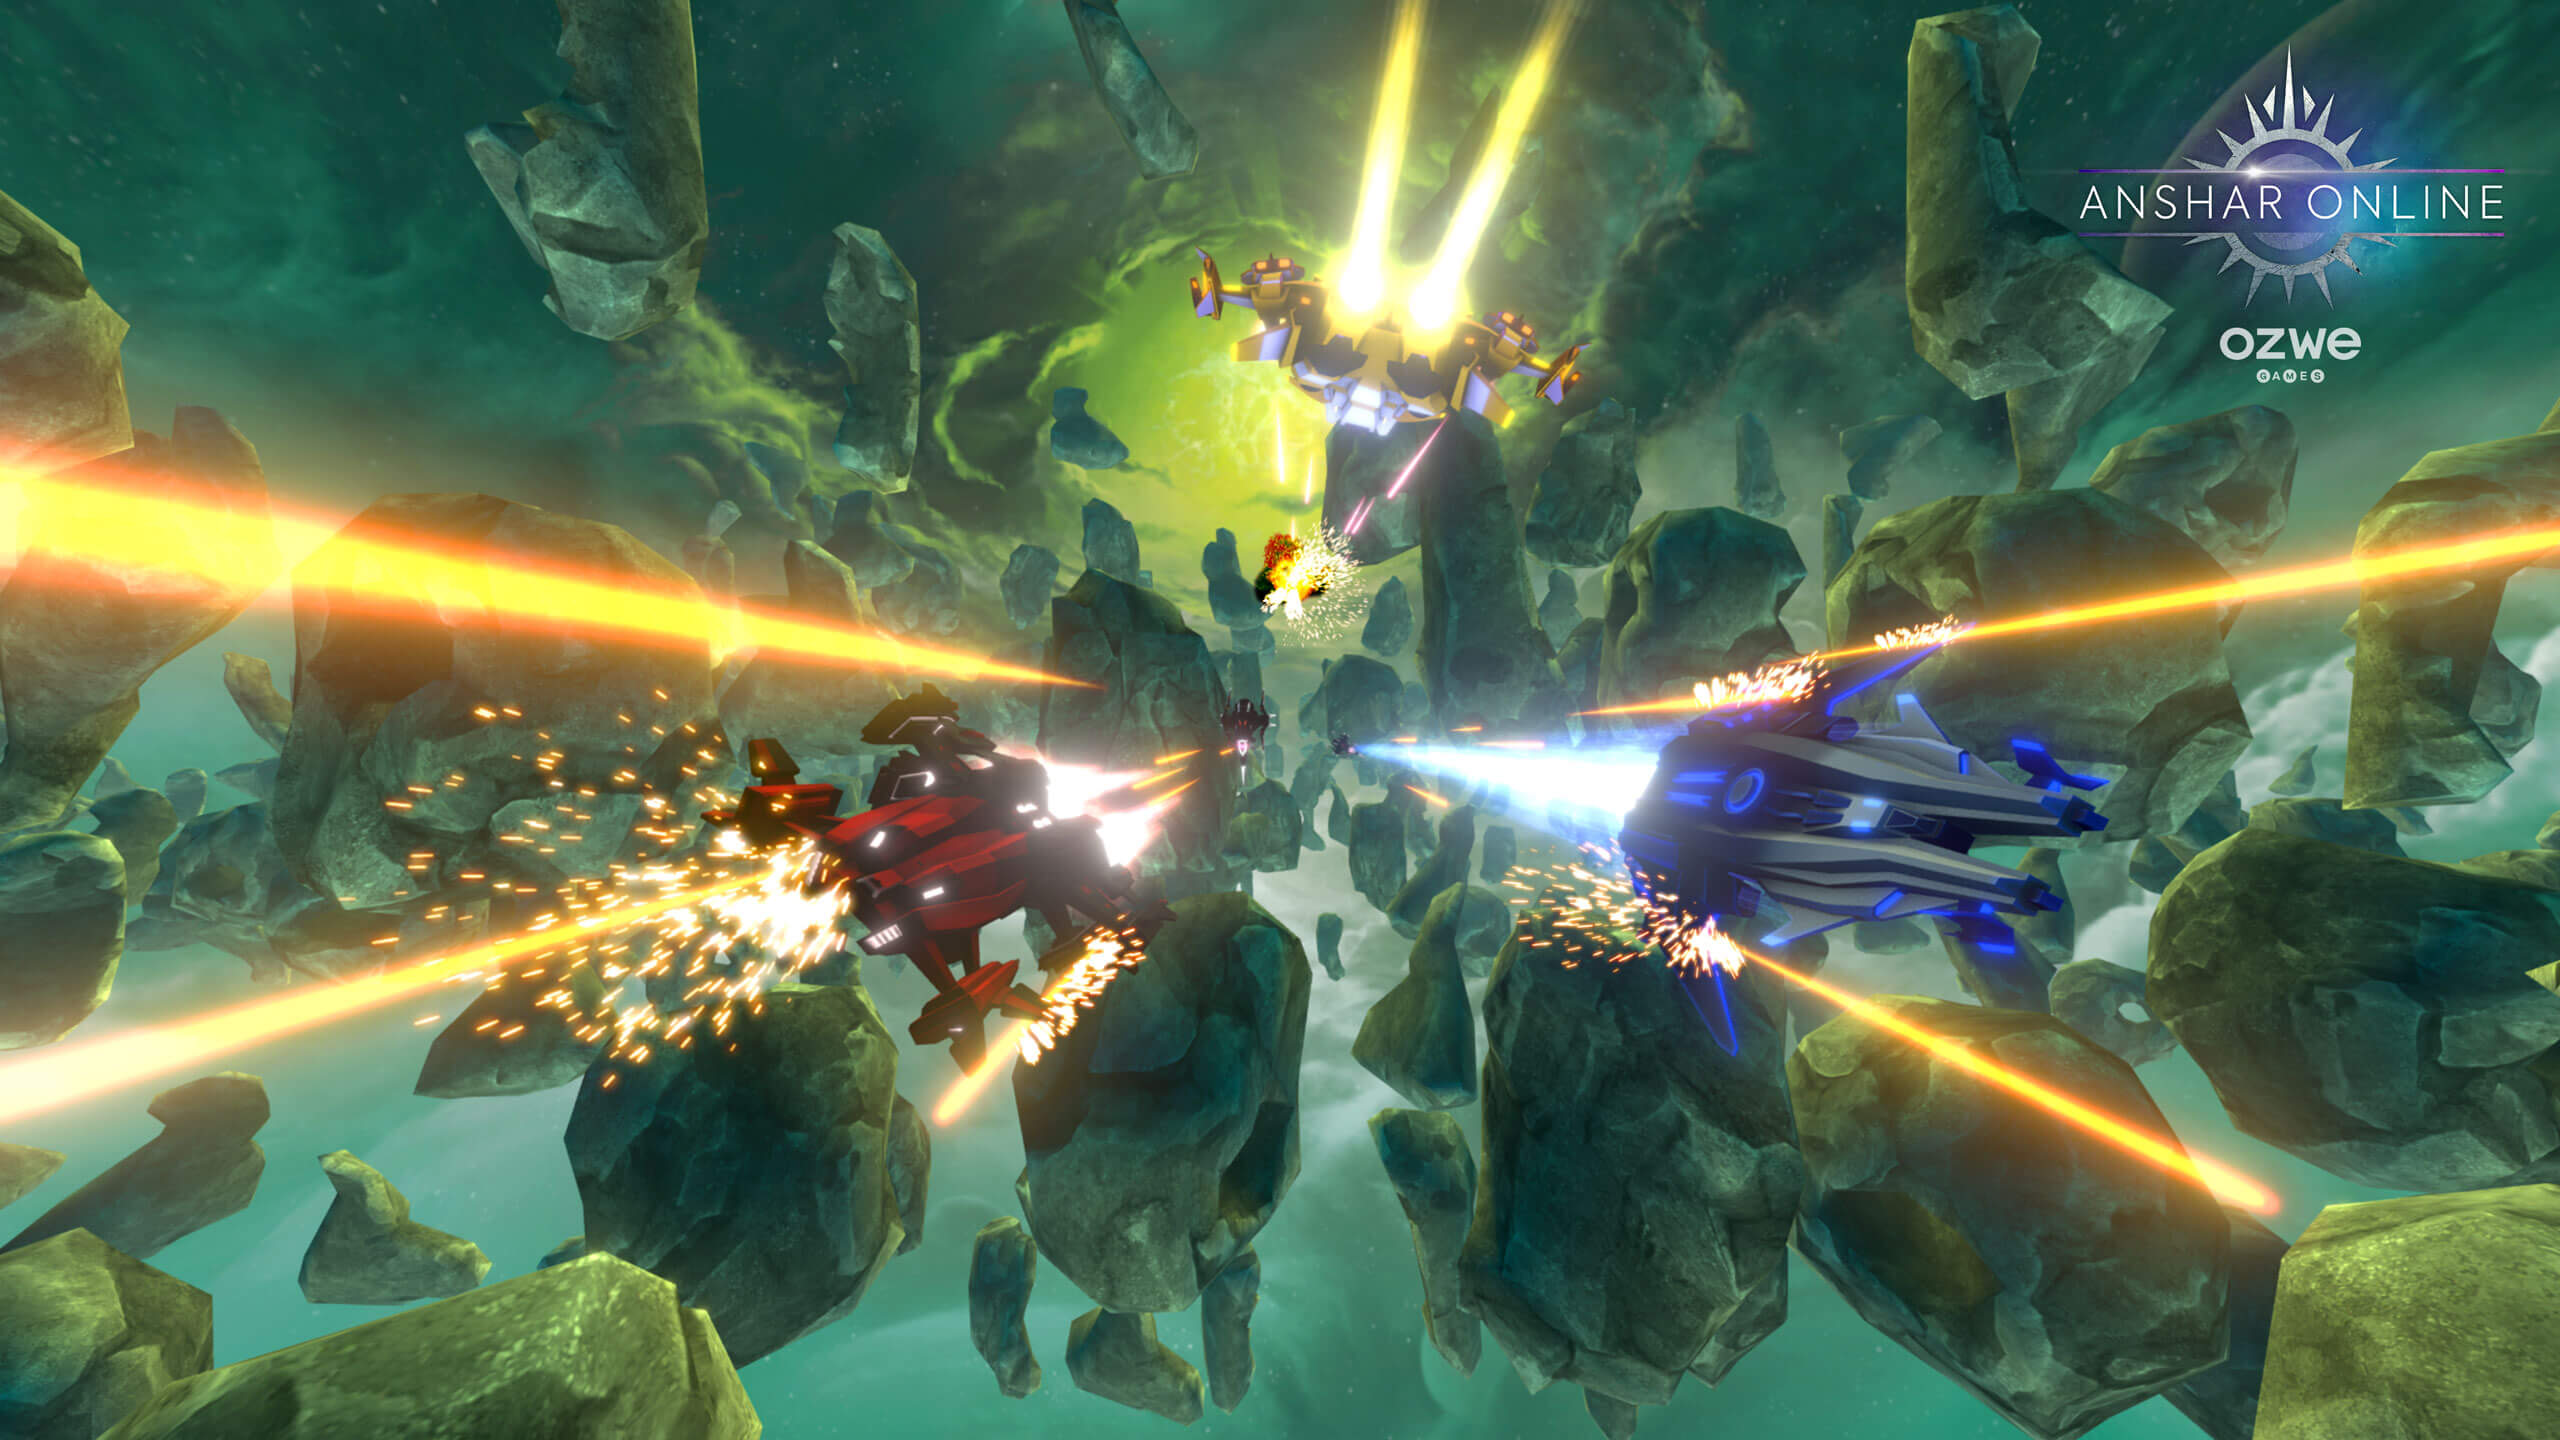 Anshar Online : game screenshot